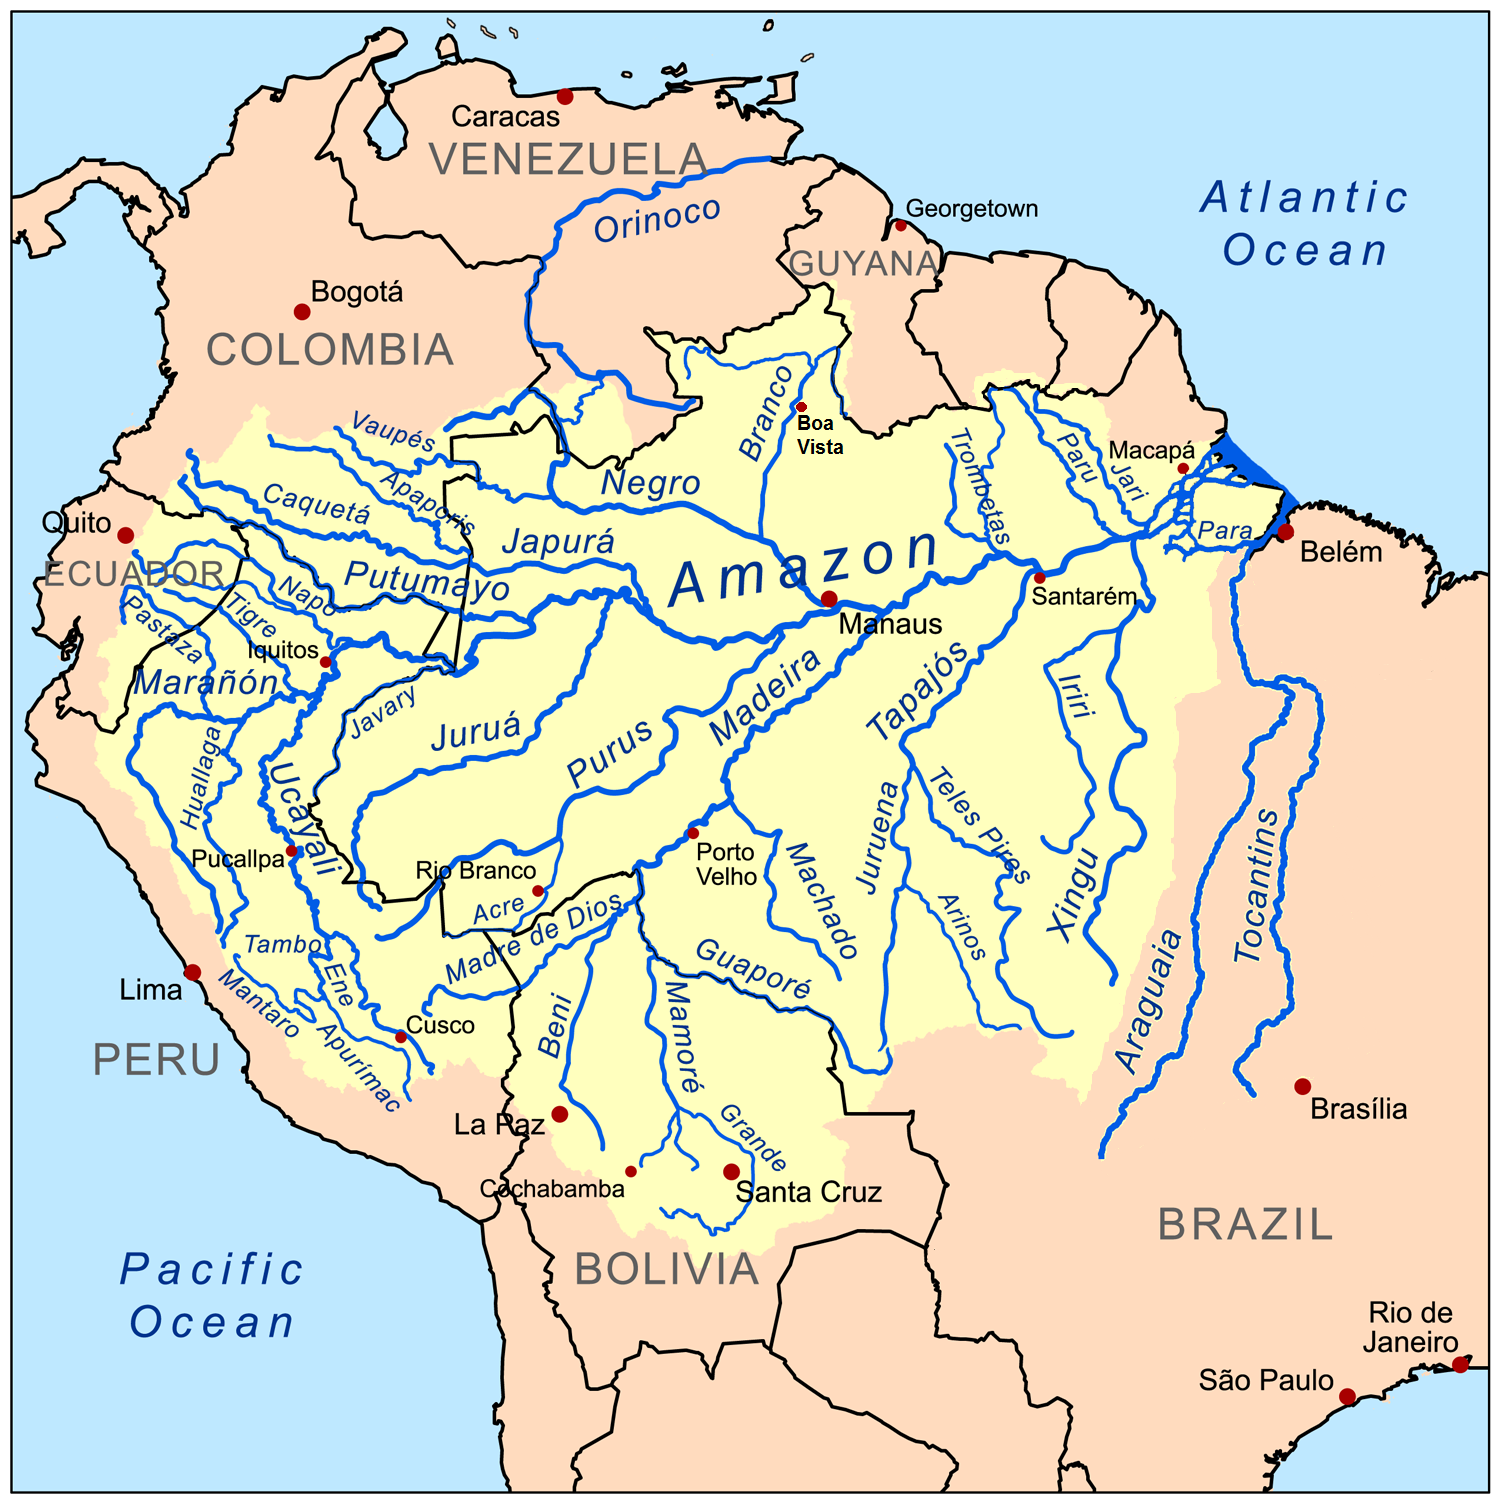 TOP BIGGEST RIVERS IN THE WORLD INFORMATION - 2 largest rivers in the world